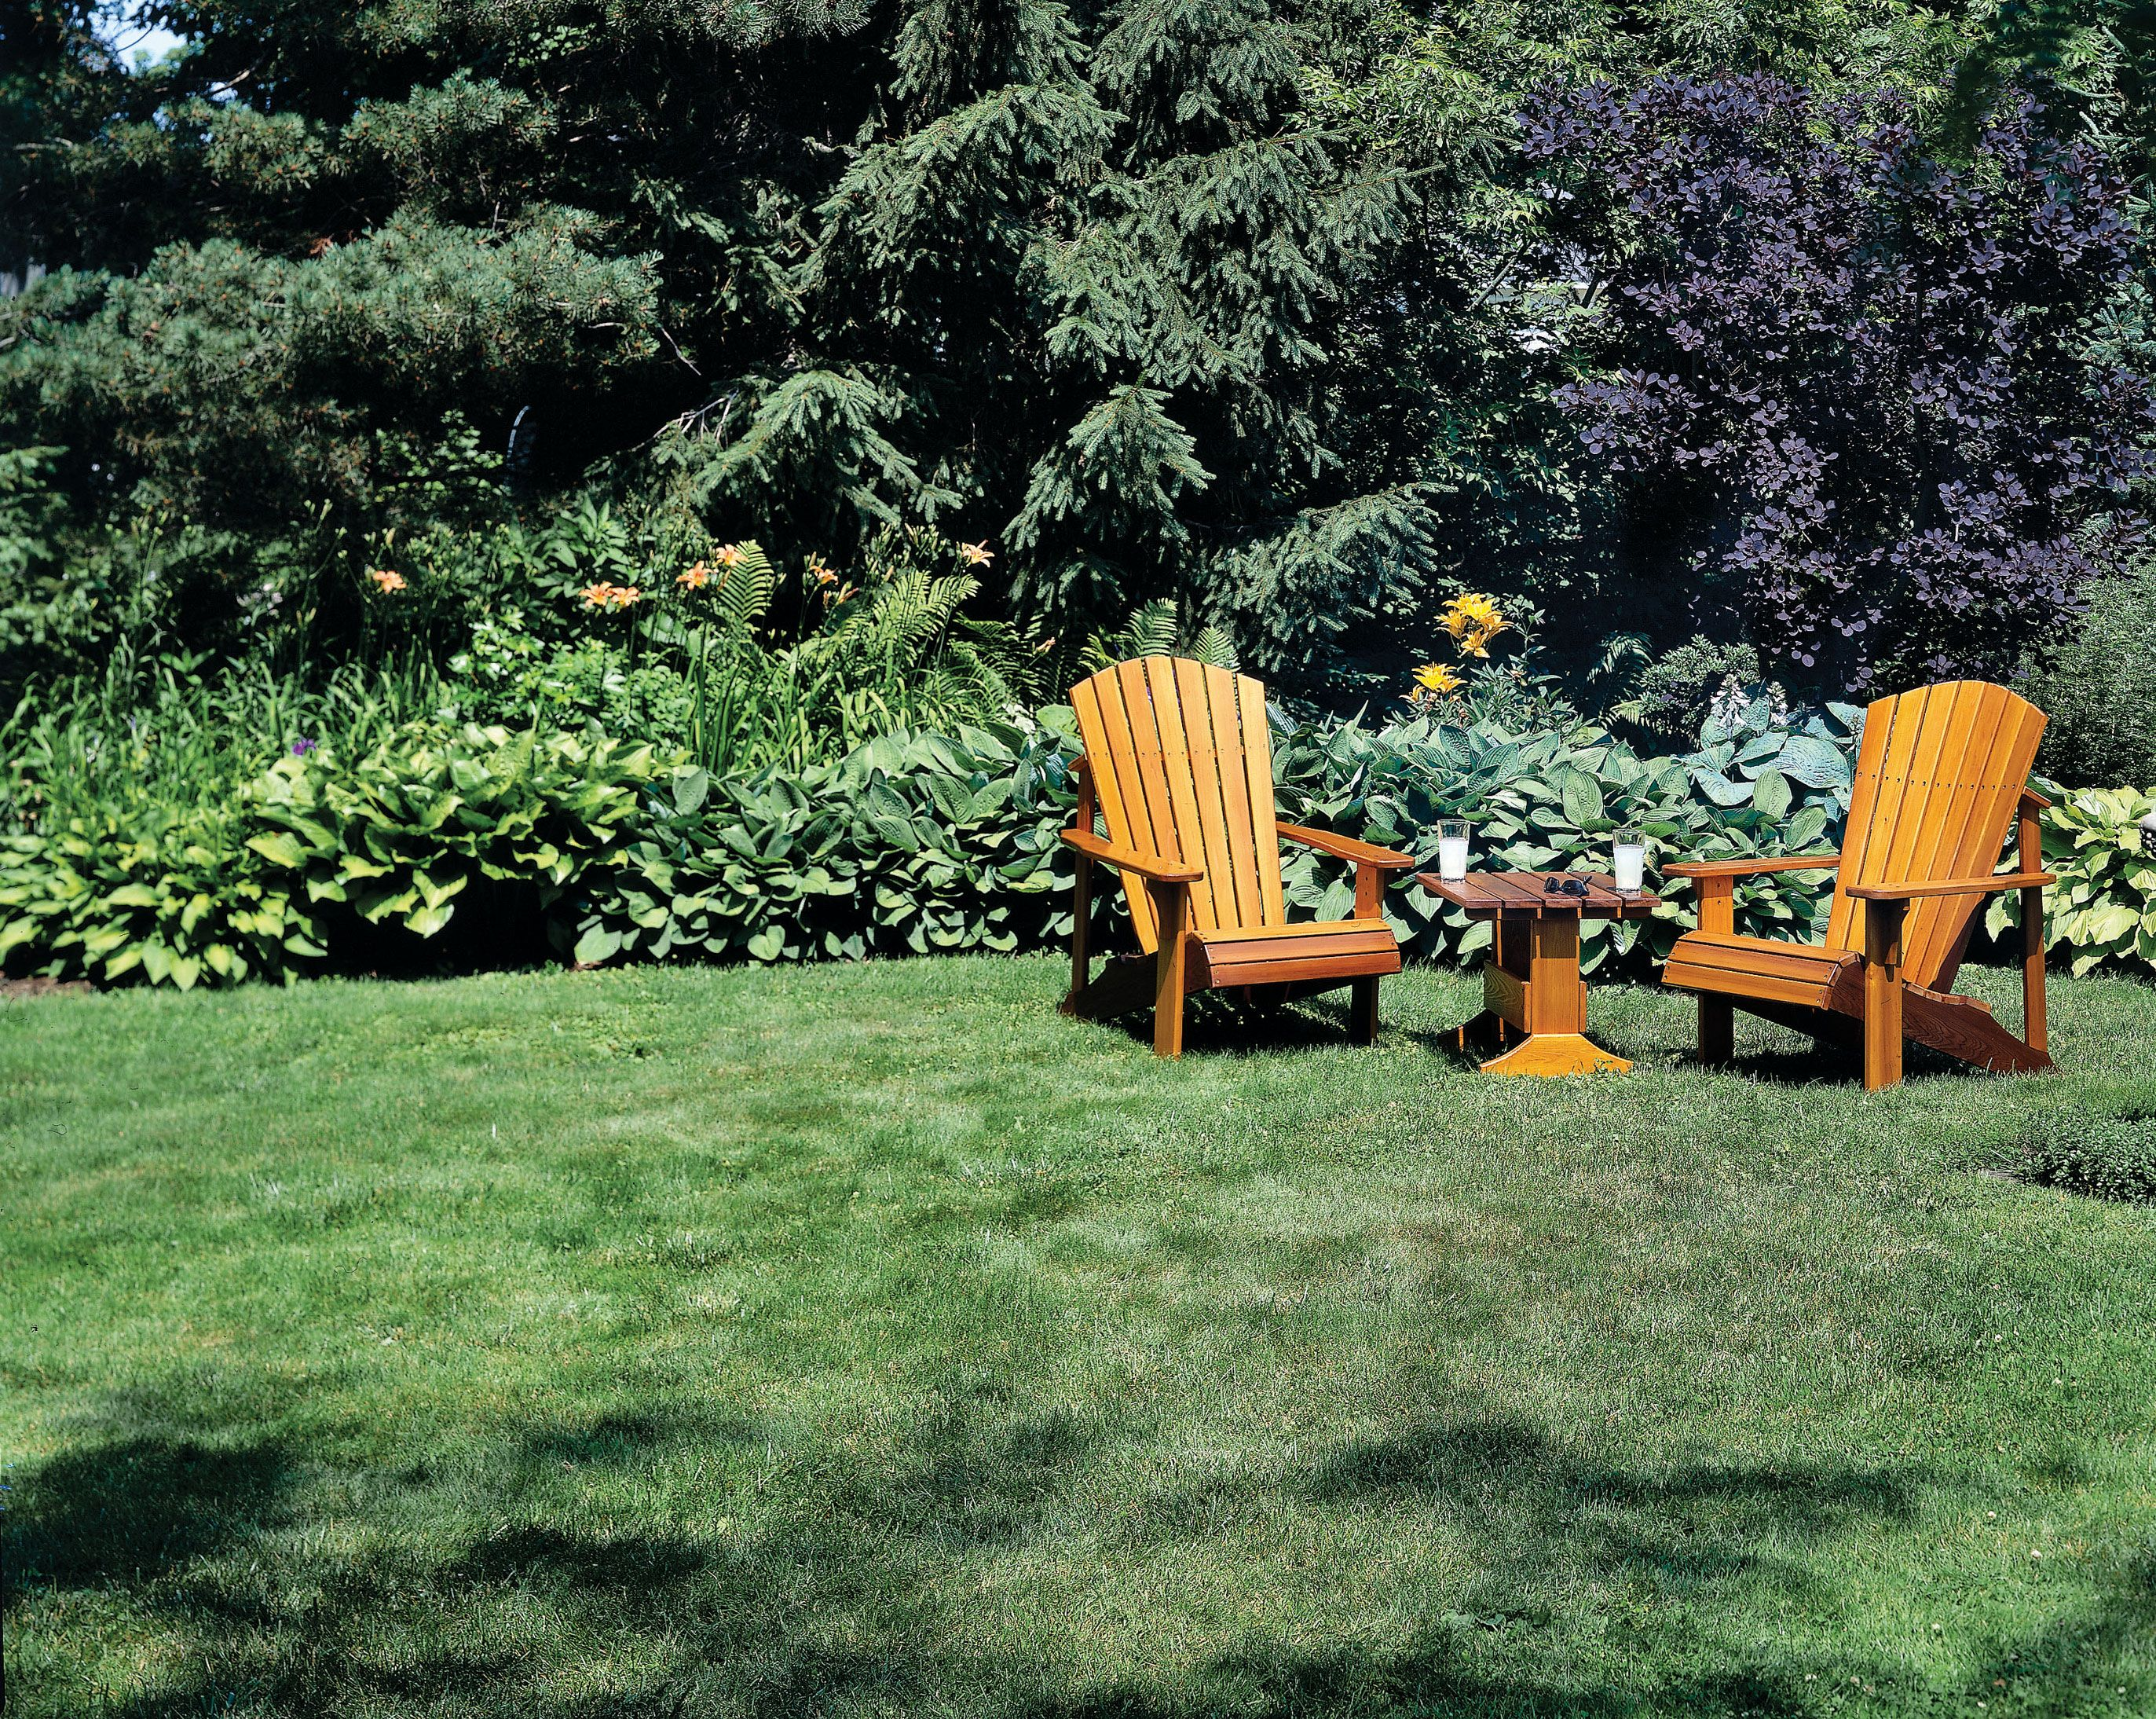 Easy Adirondack Chair Plans How To Build Adirondack Chairs